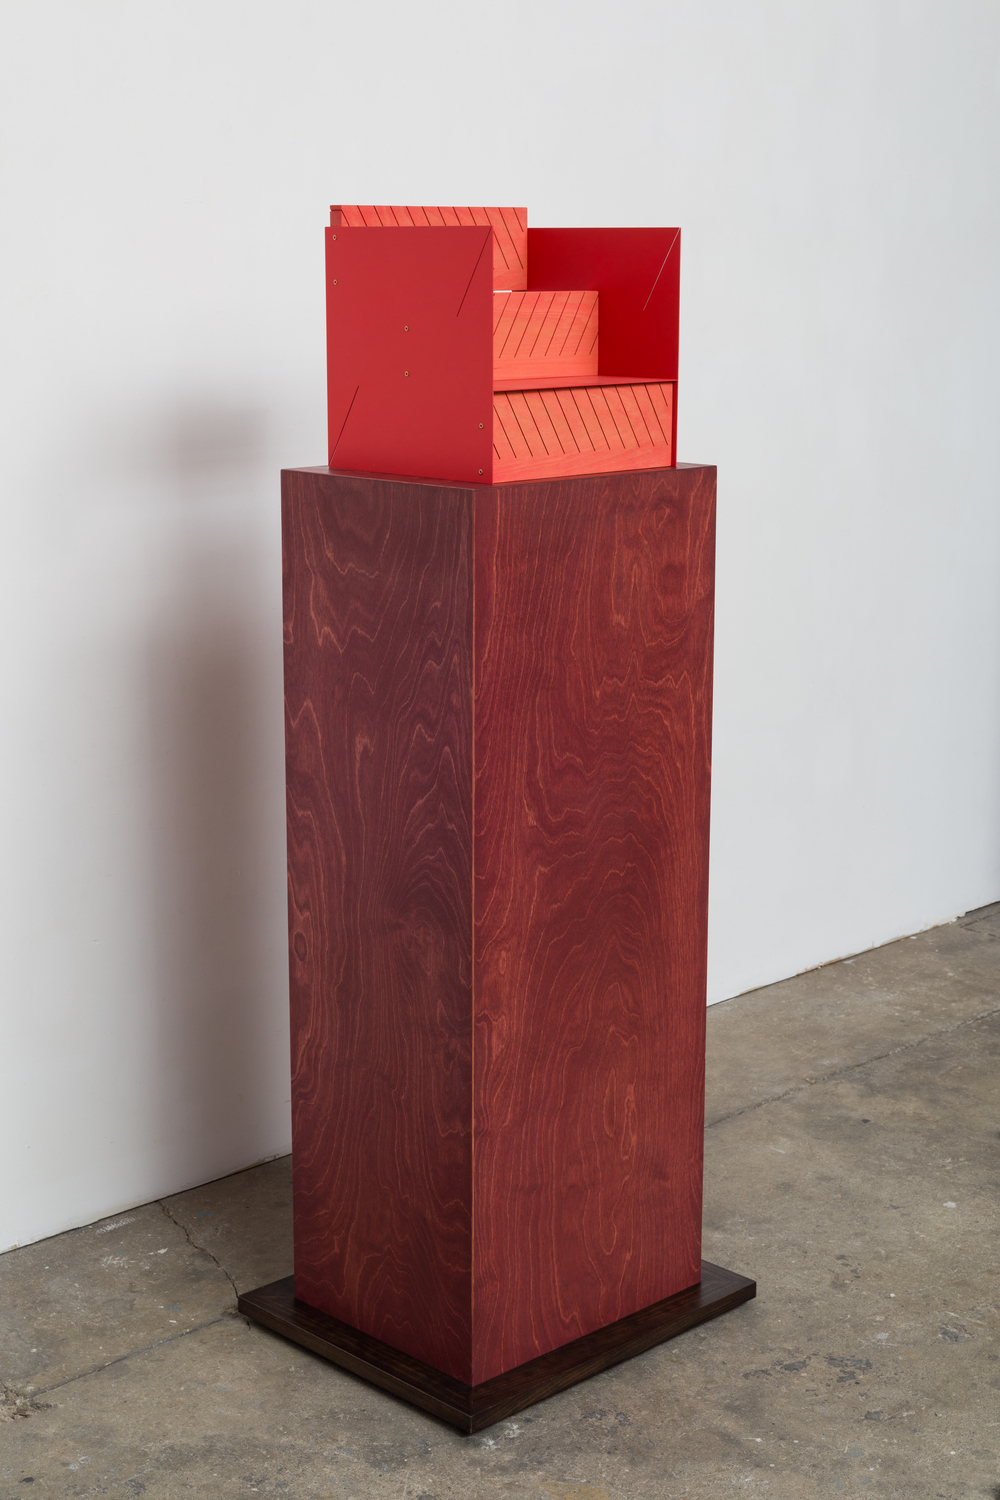 Steps (Zig Zag)  2014 Euro-beech hardwood, steel, copper rivets, enamel, wax 30.4 x 30.4 x 27.9 cm / 12 x 12 x 11 in Plinth: 120 x 50.8 x 43.1 cm / 47.2 x 20 x 17 in